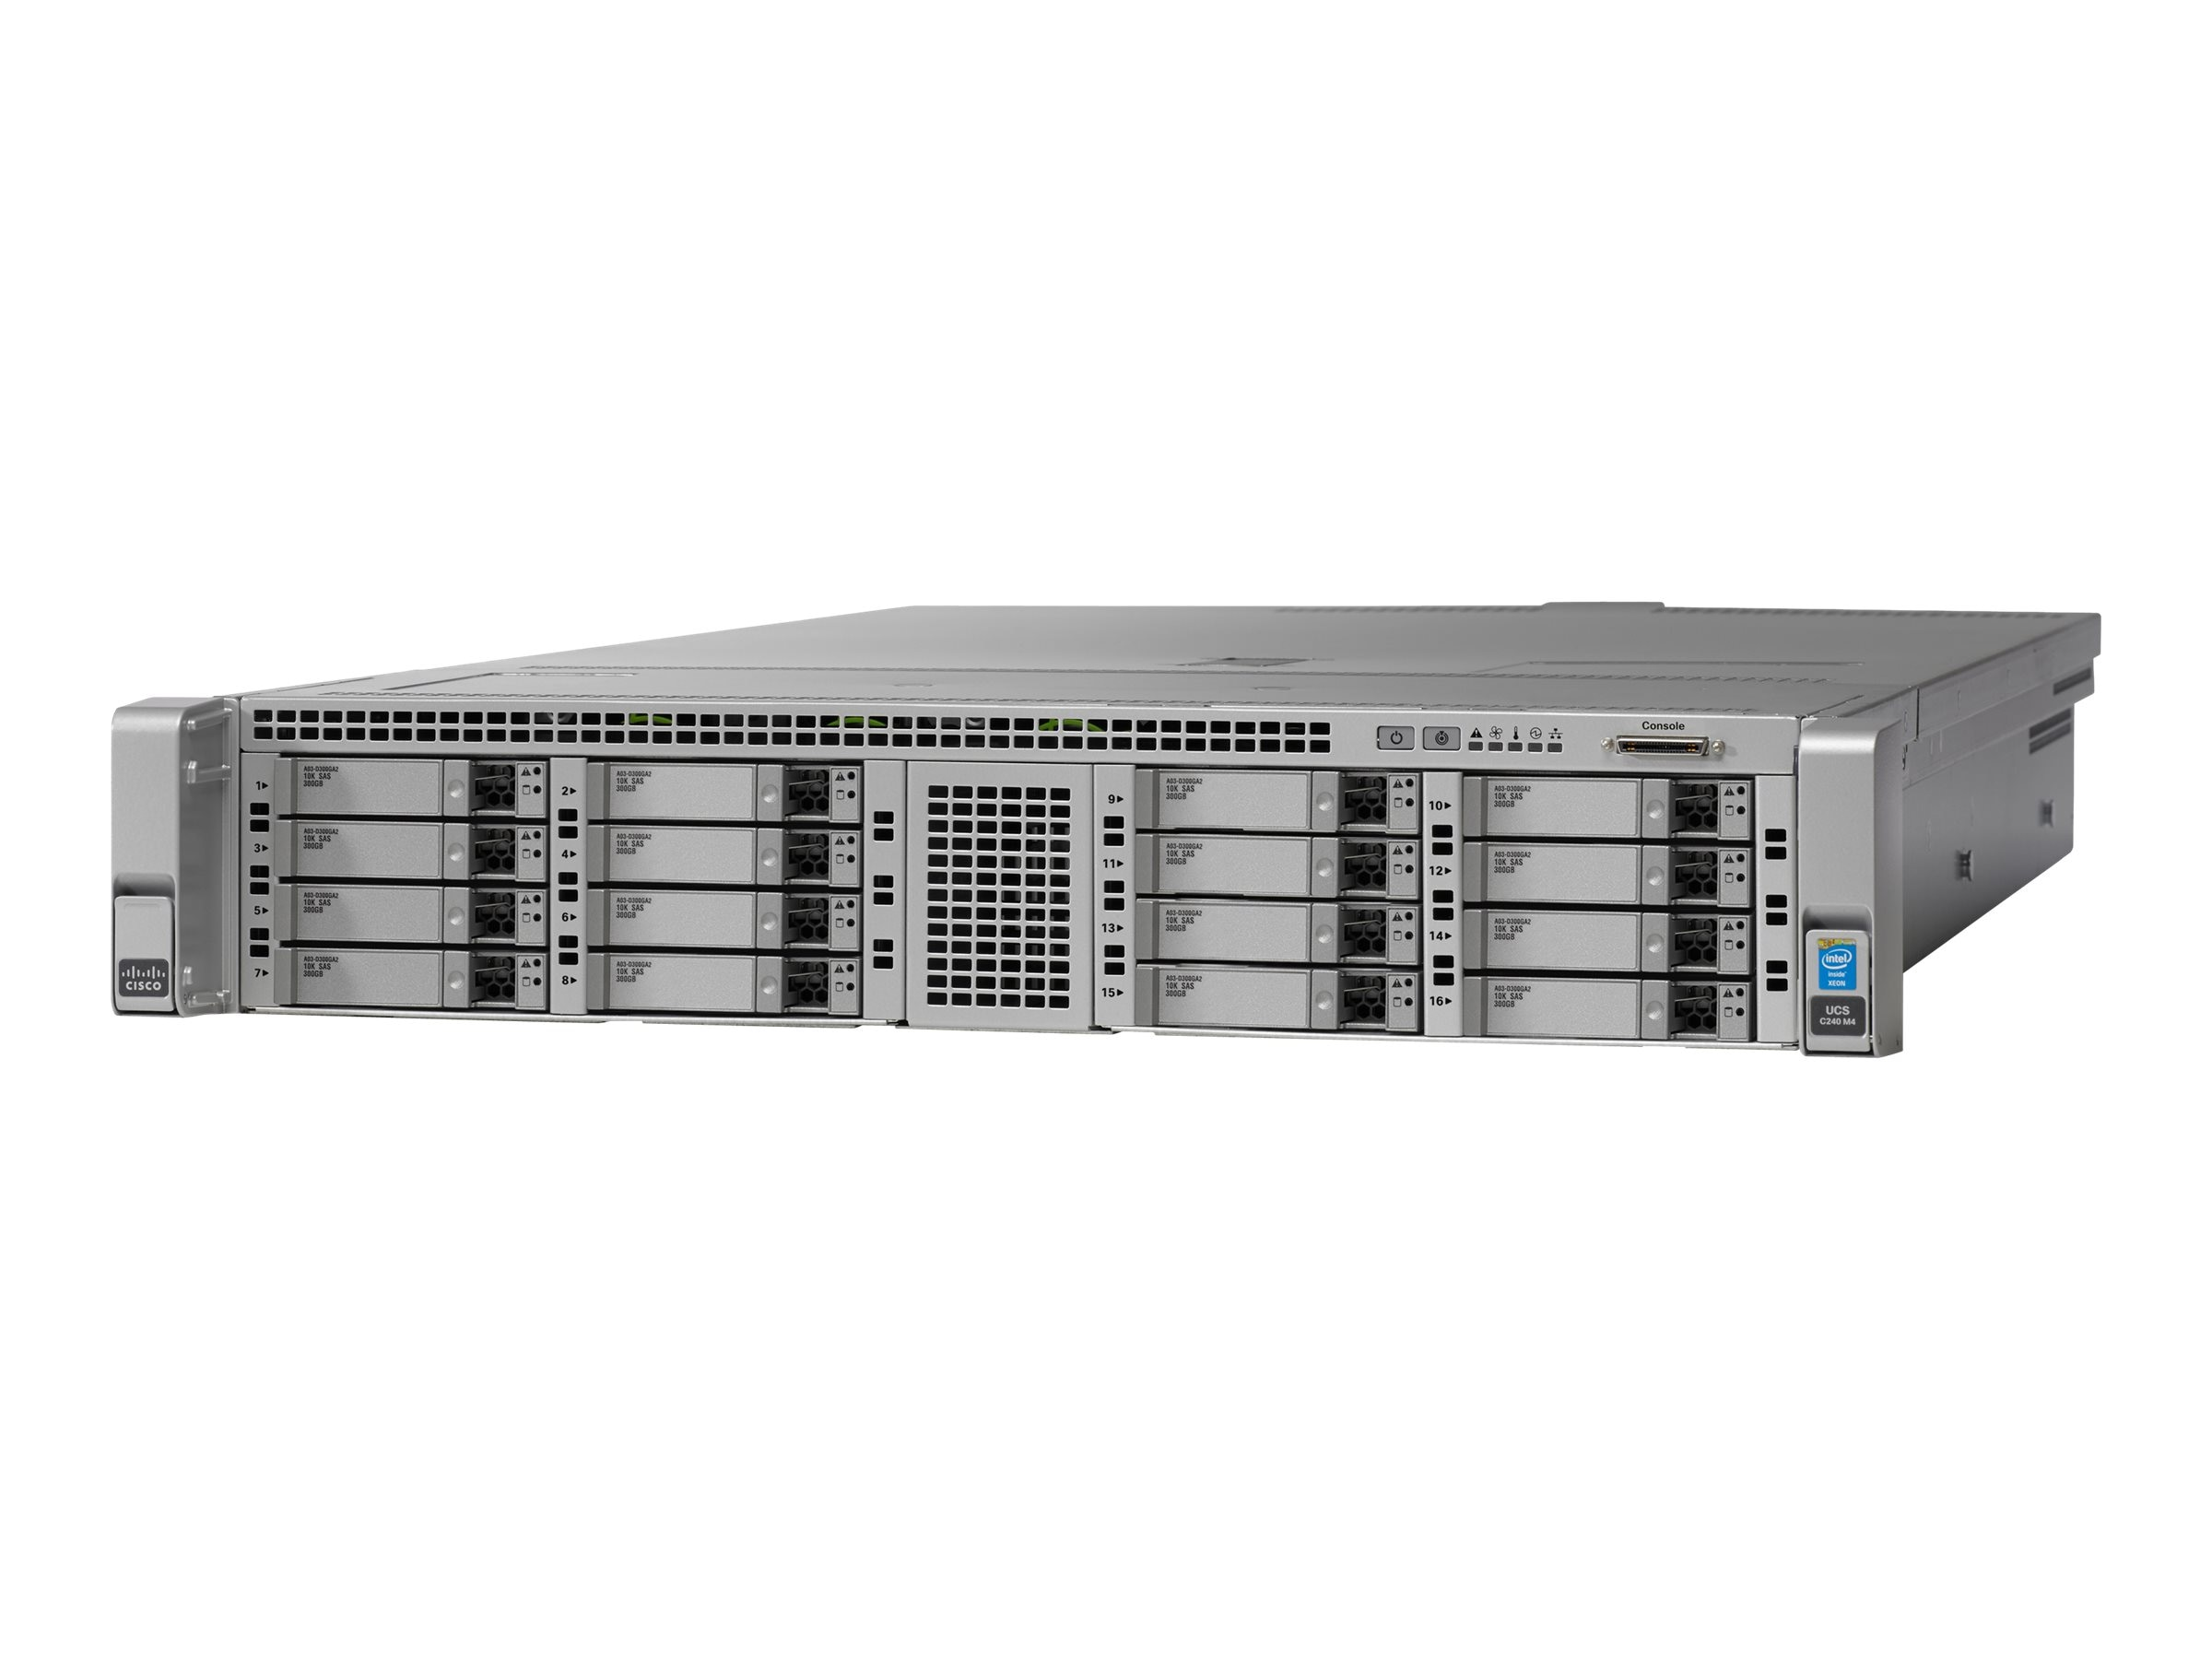 Cisco Barebones, UCS C240 M4 16xSFF without CPU, Memory, HDD, SSD, PCIe, Rail Kit, or Power Supply, UCSC-C240-M4S2-CH